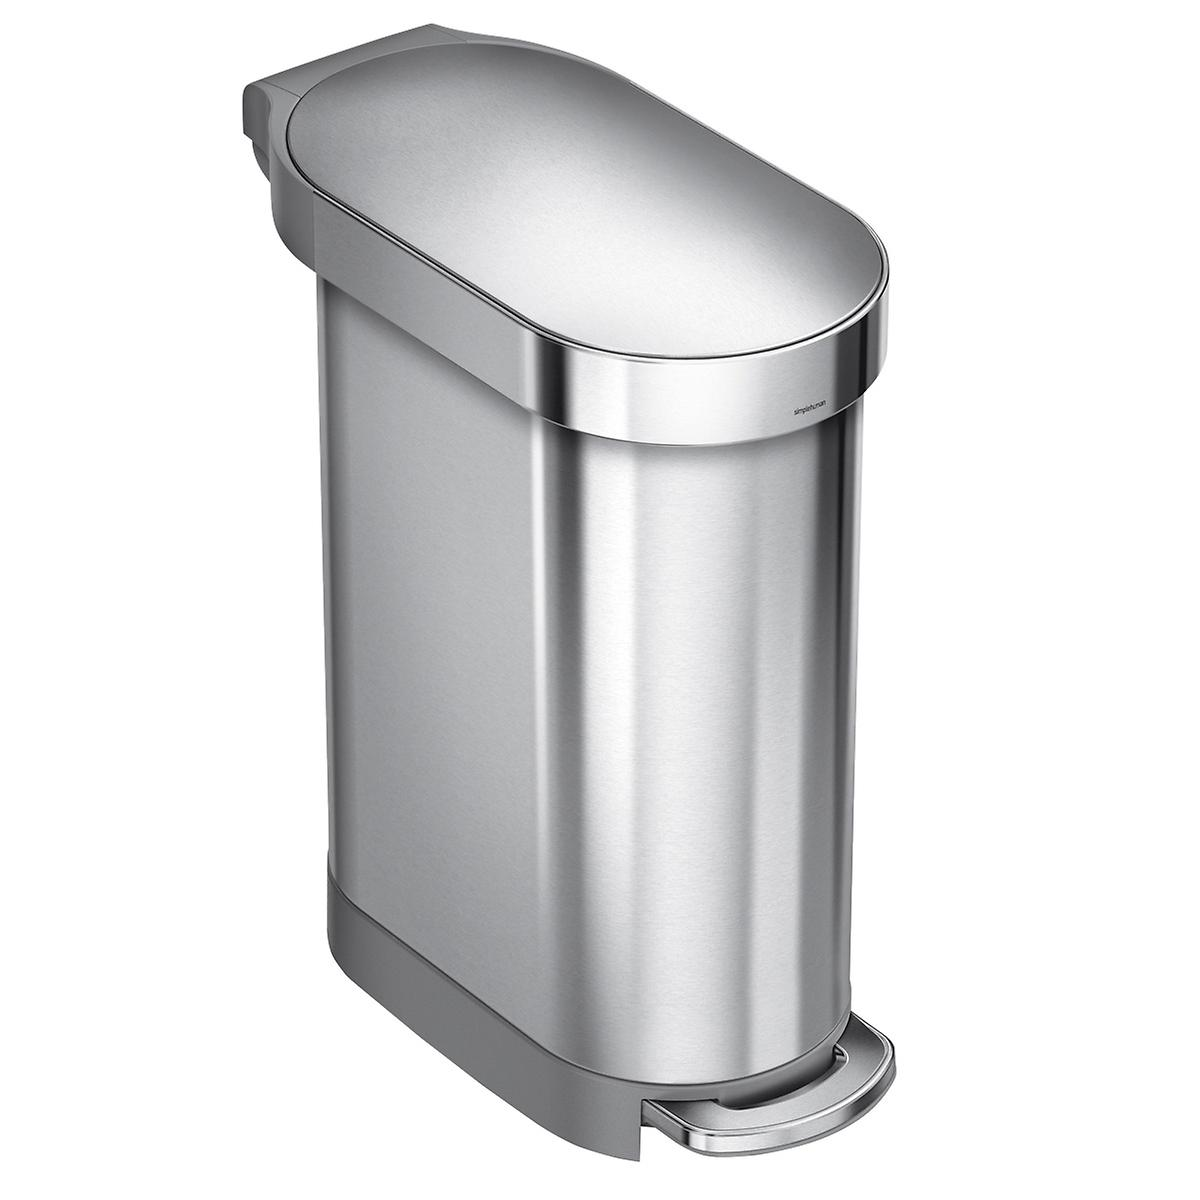 simplehuman Stainless Steel 12 gal./45L Step Trash Can